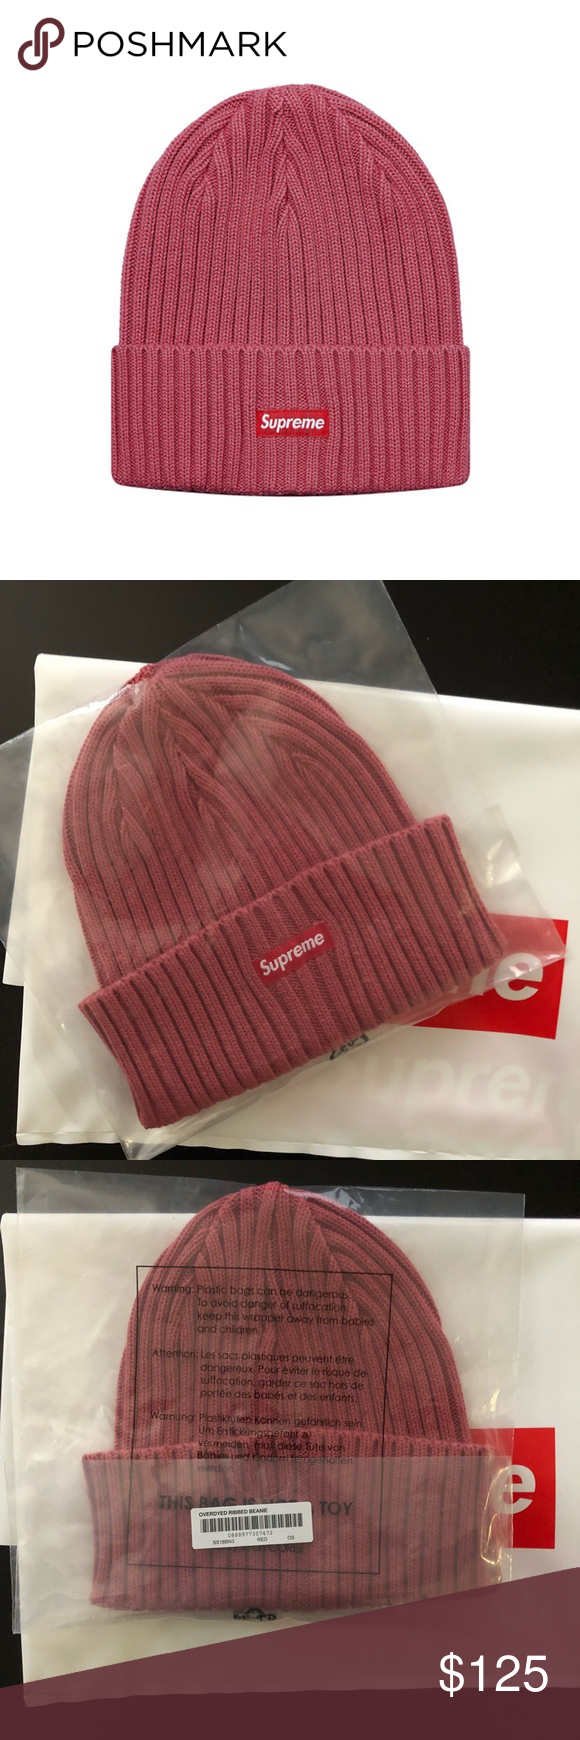 4cddff7b5ed Supreme Overdyed Ribbed Beanie Brand new Beanie SS18 drop never removed  from packaging Style- washed Magenta Supreme Accessories Hats